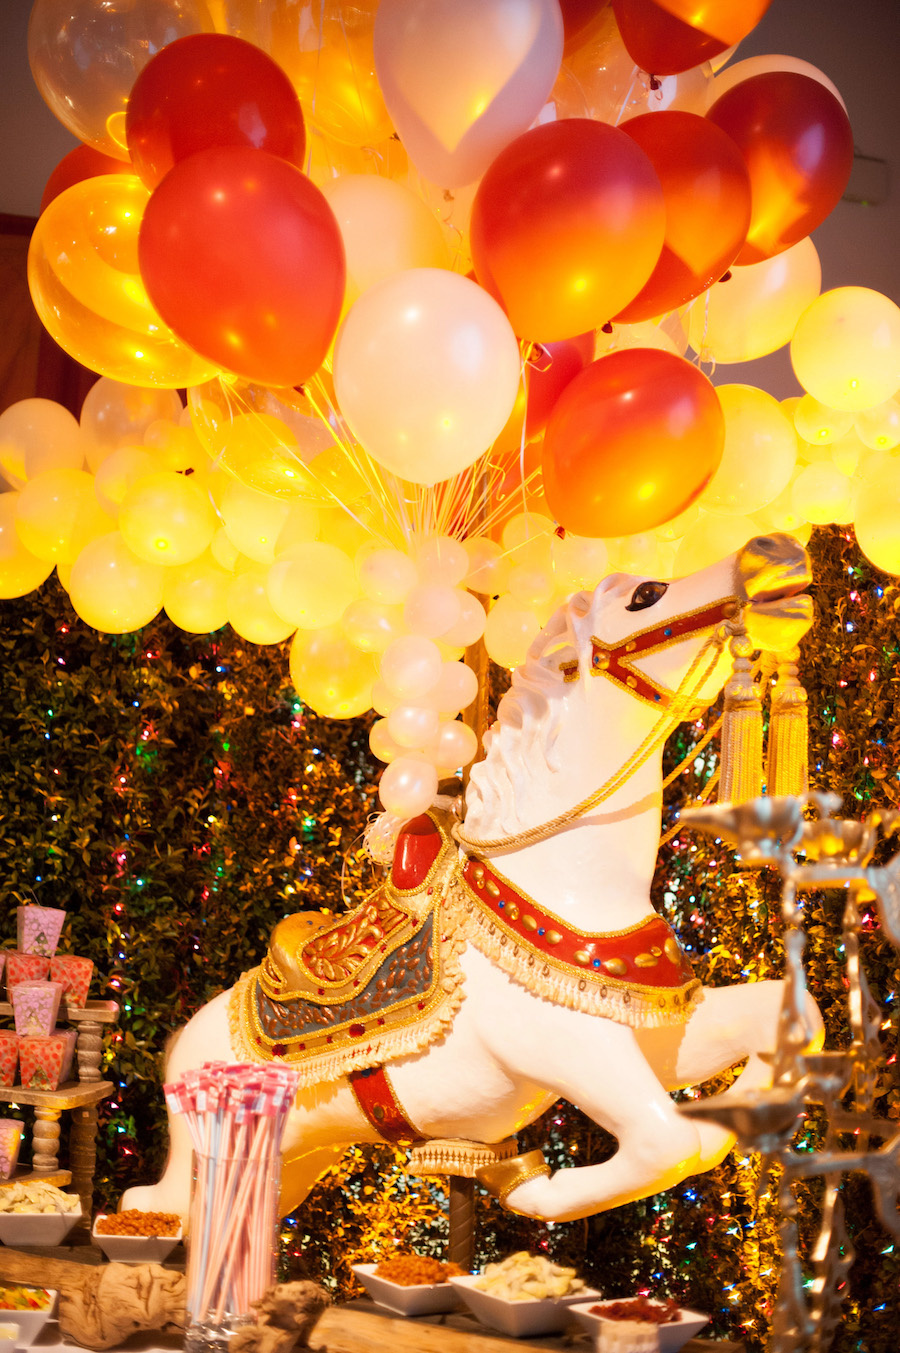 Circus Theme Bat Mitzvah Featured on Special Events Magazine